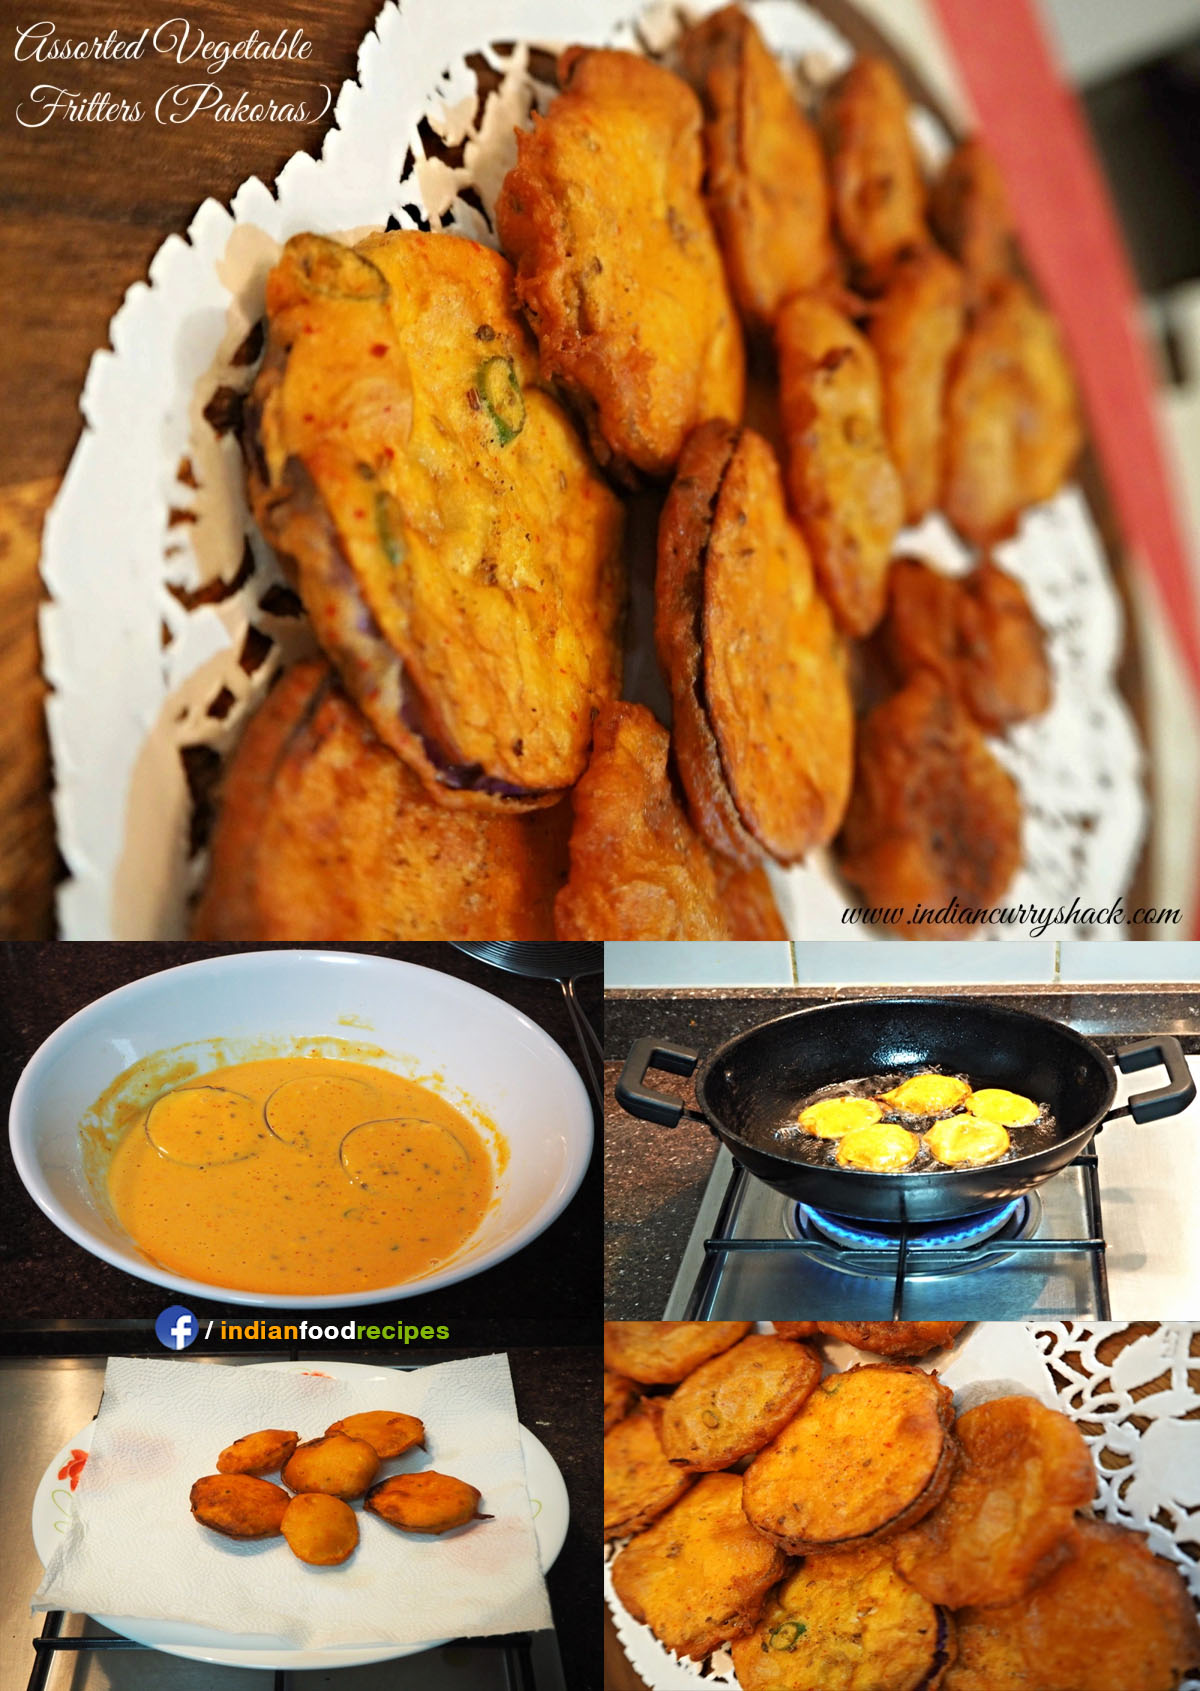 Mixed Pakora / Assorted Vegetable Fritters (Pakoras) recipe step by step